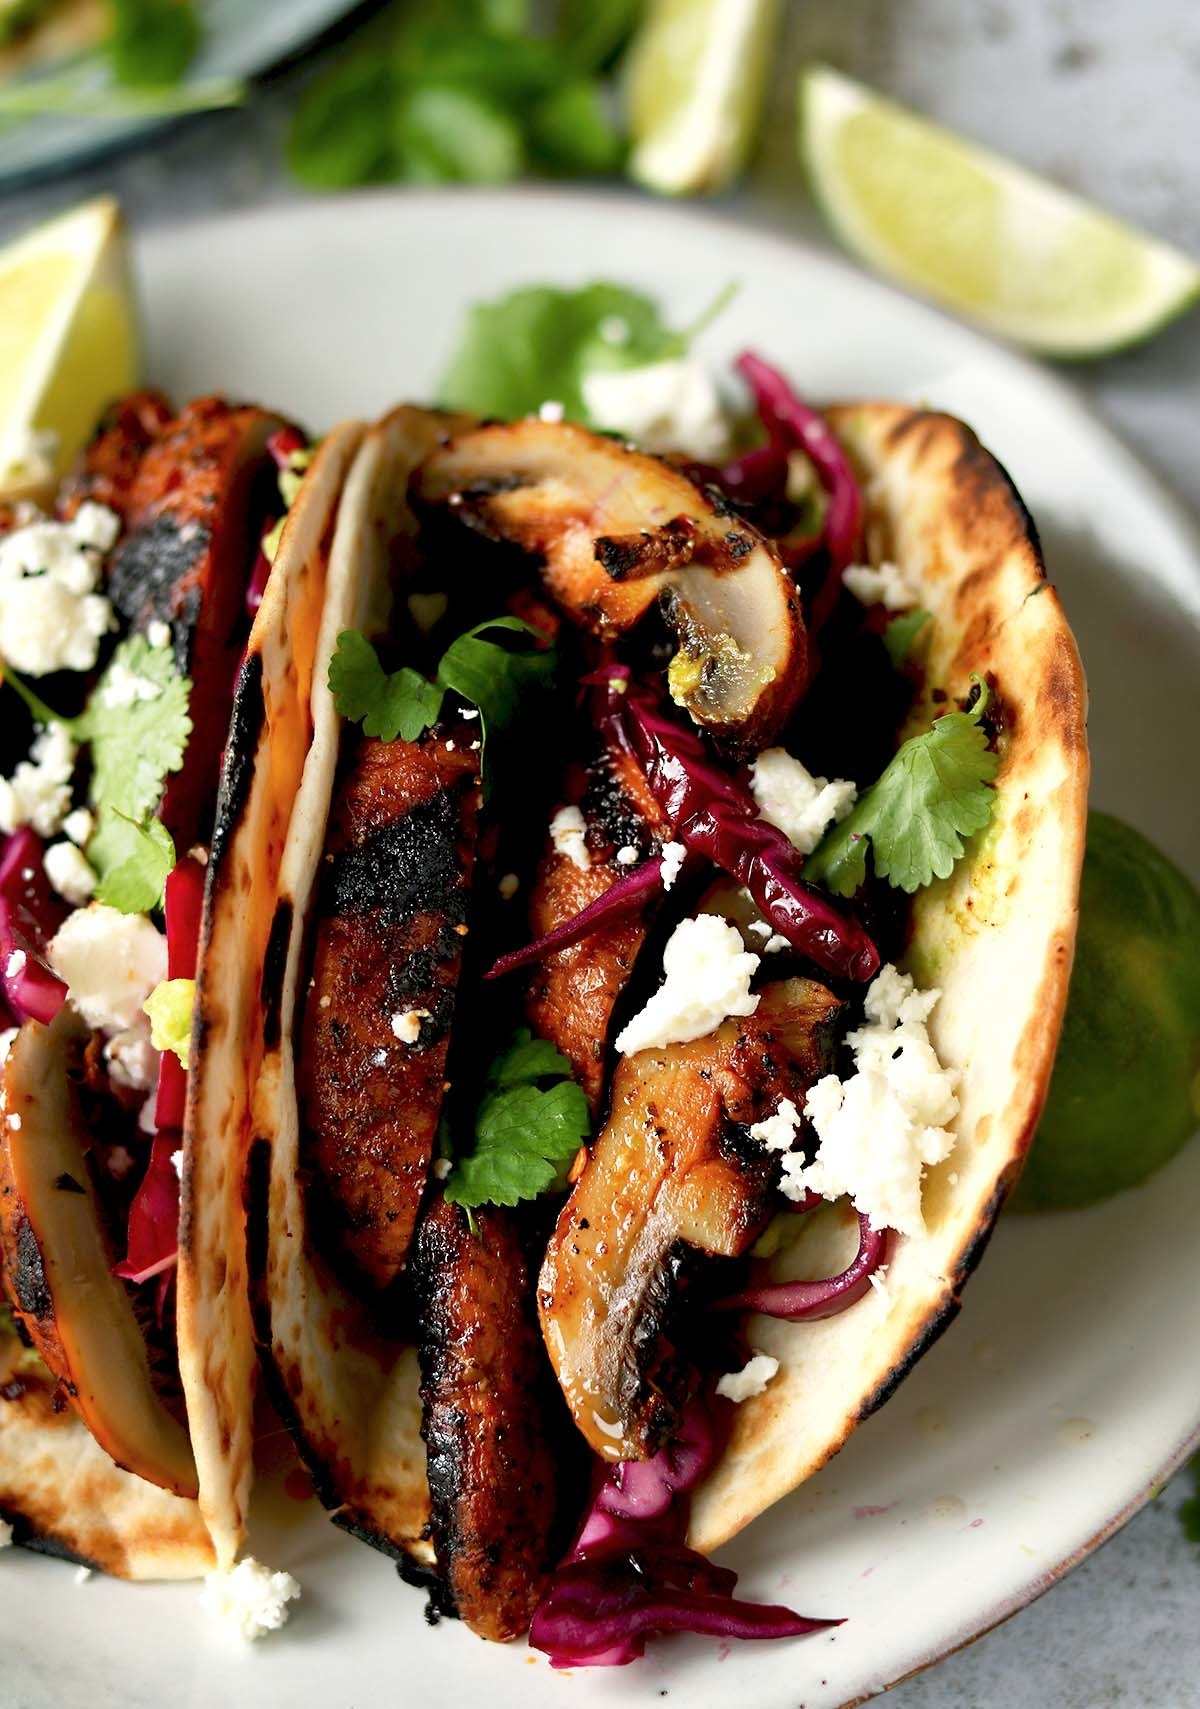 Two tacos filled with sliced mushrooms, cabbage, herbs, and cotija cheese.